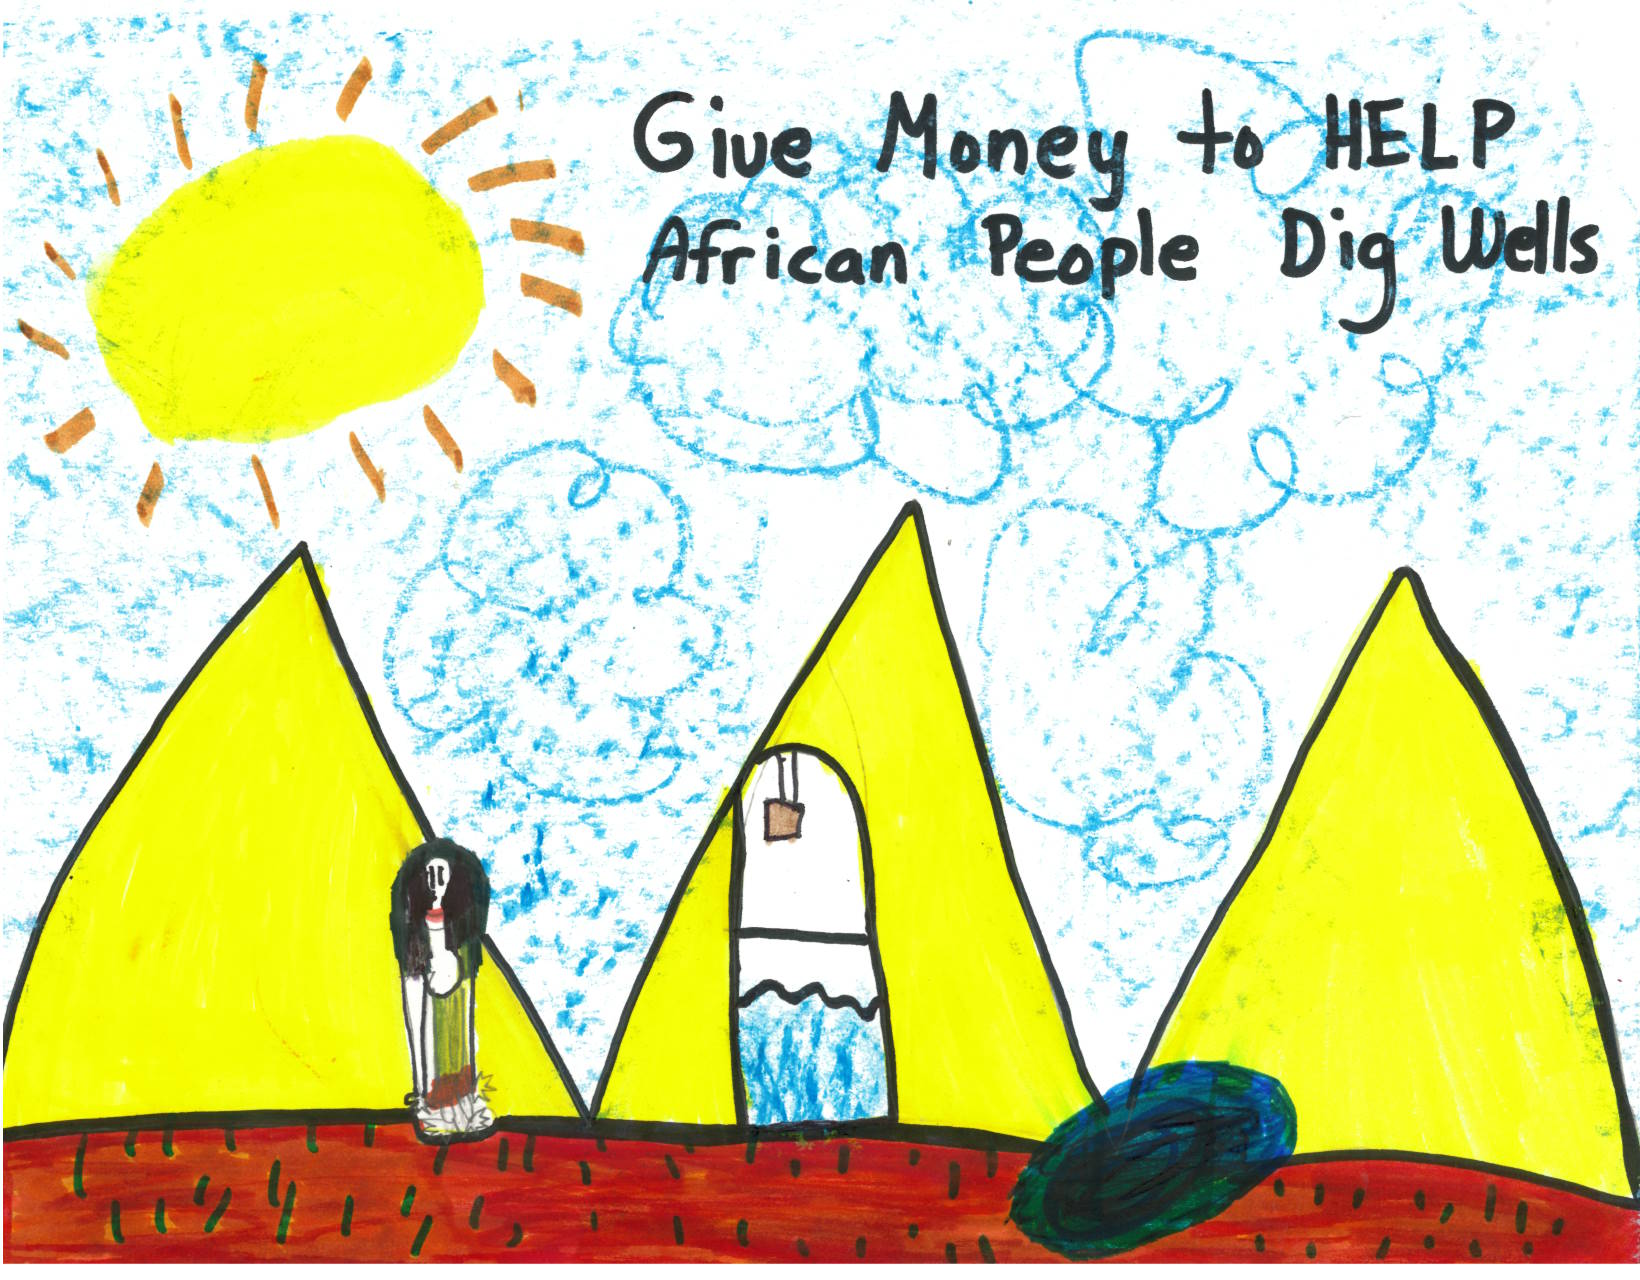 A children's drawing of a lady by the pyramids of Africa standing next to a well.